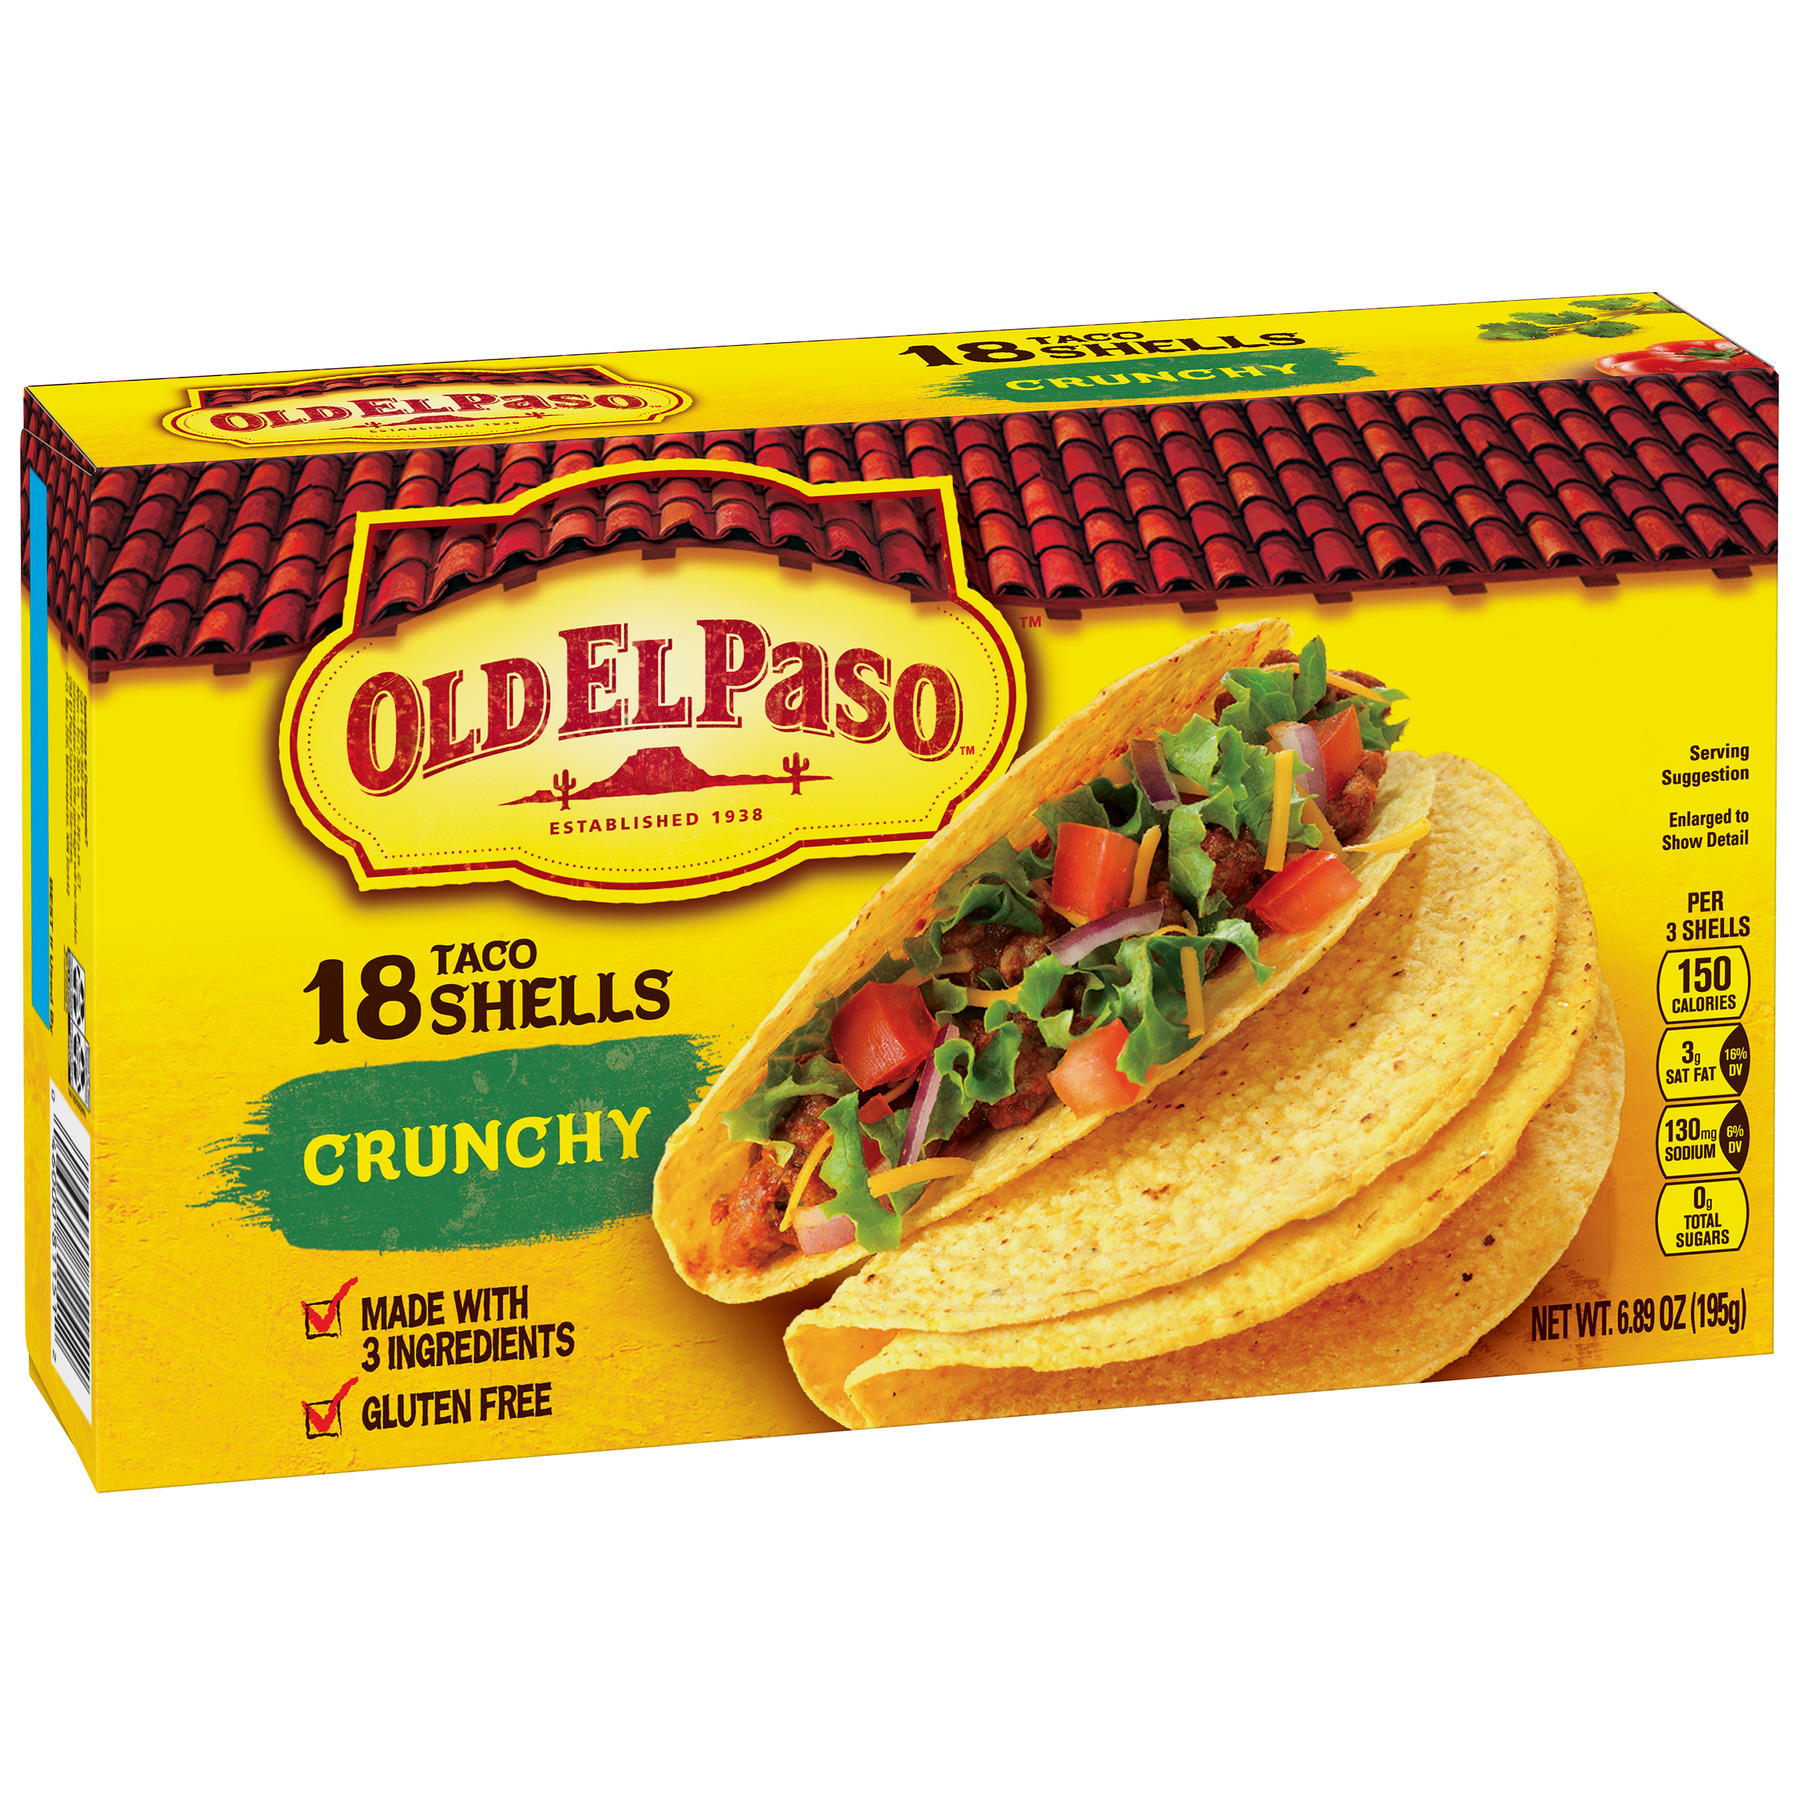 Old El Paso Crunchy Shells, Gluten Free, 18 Ct, 6.89 oz Box